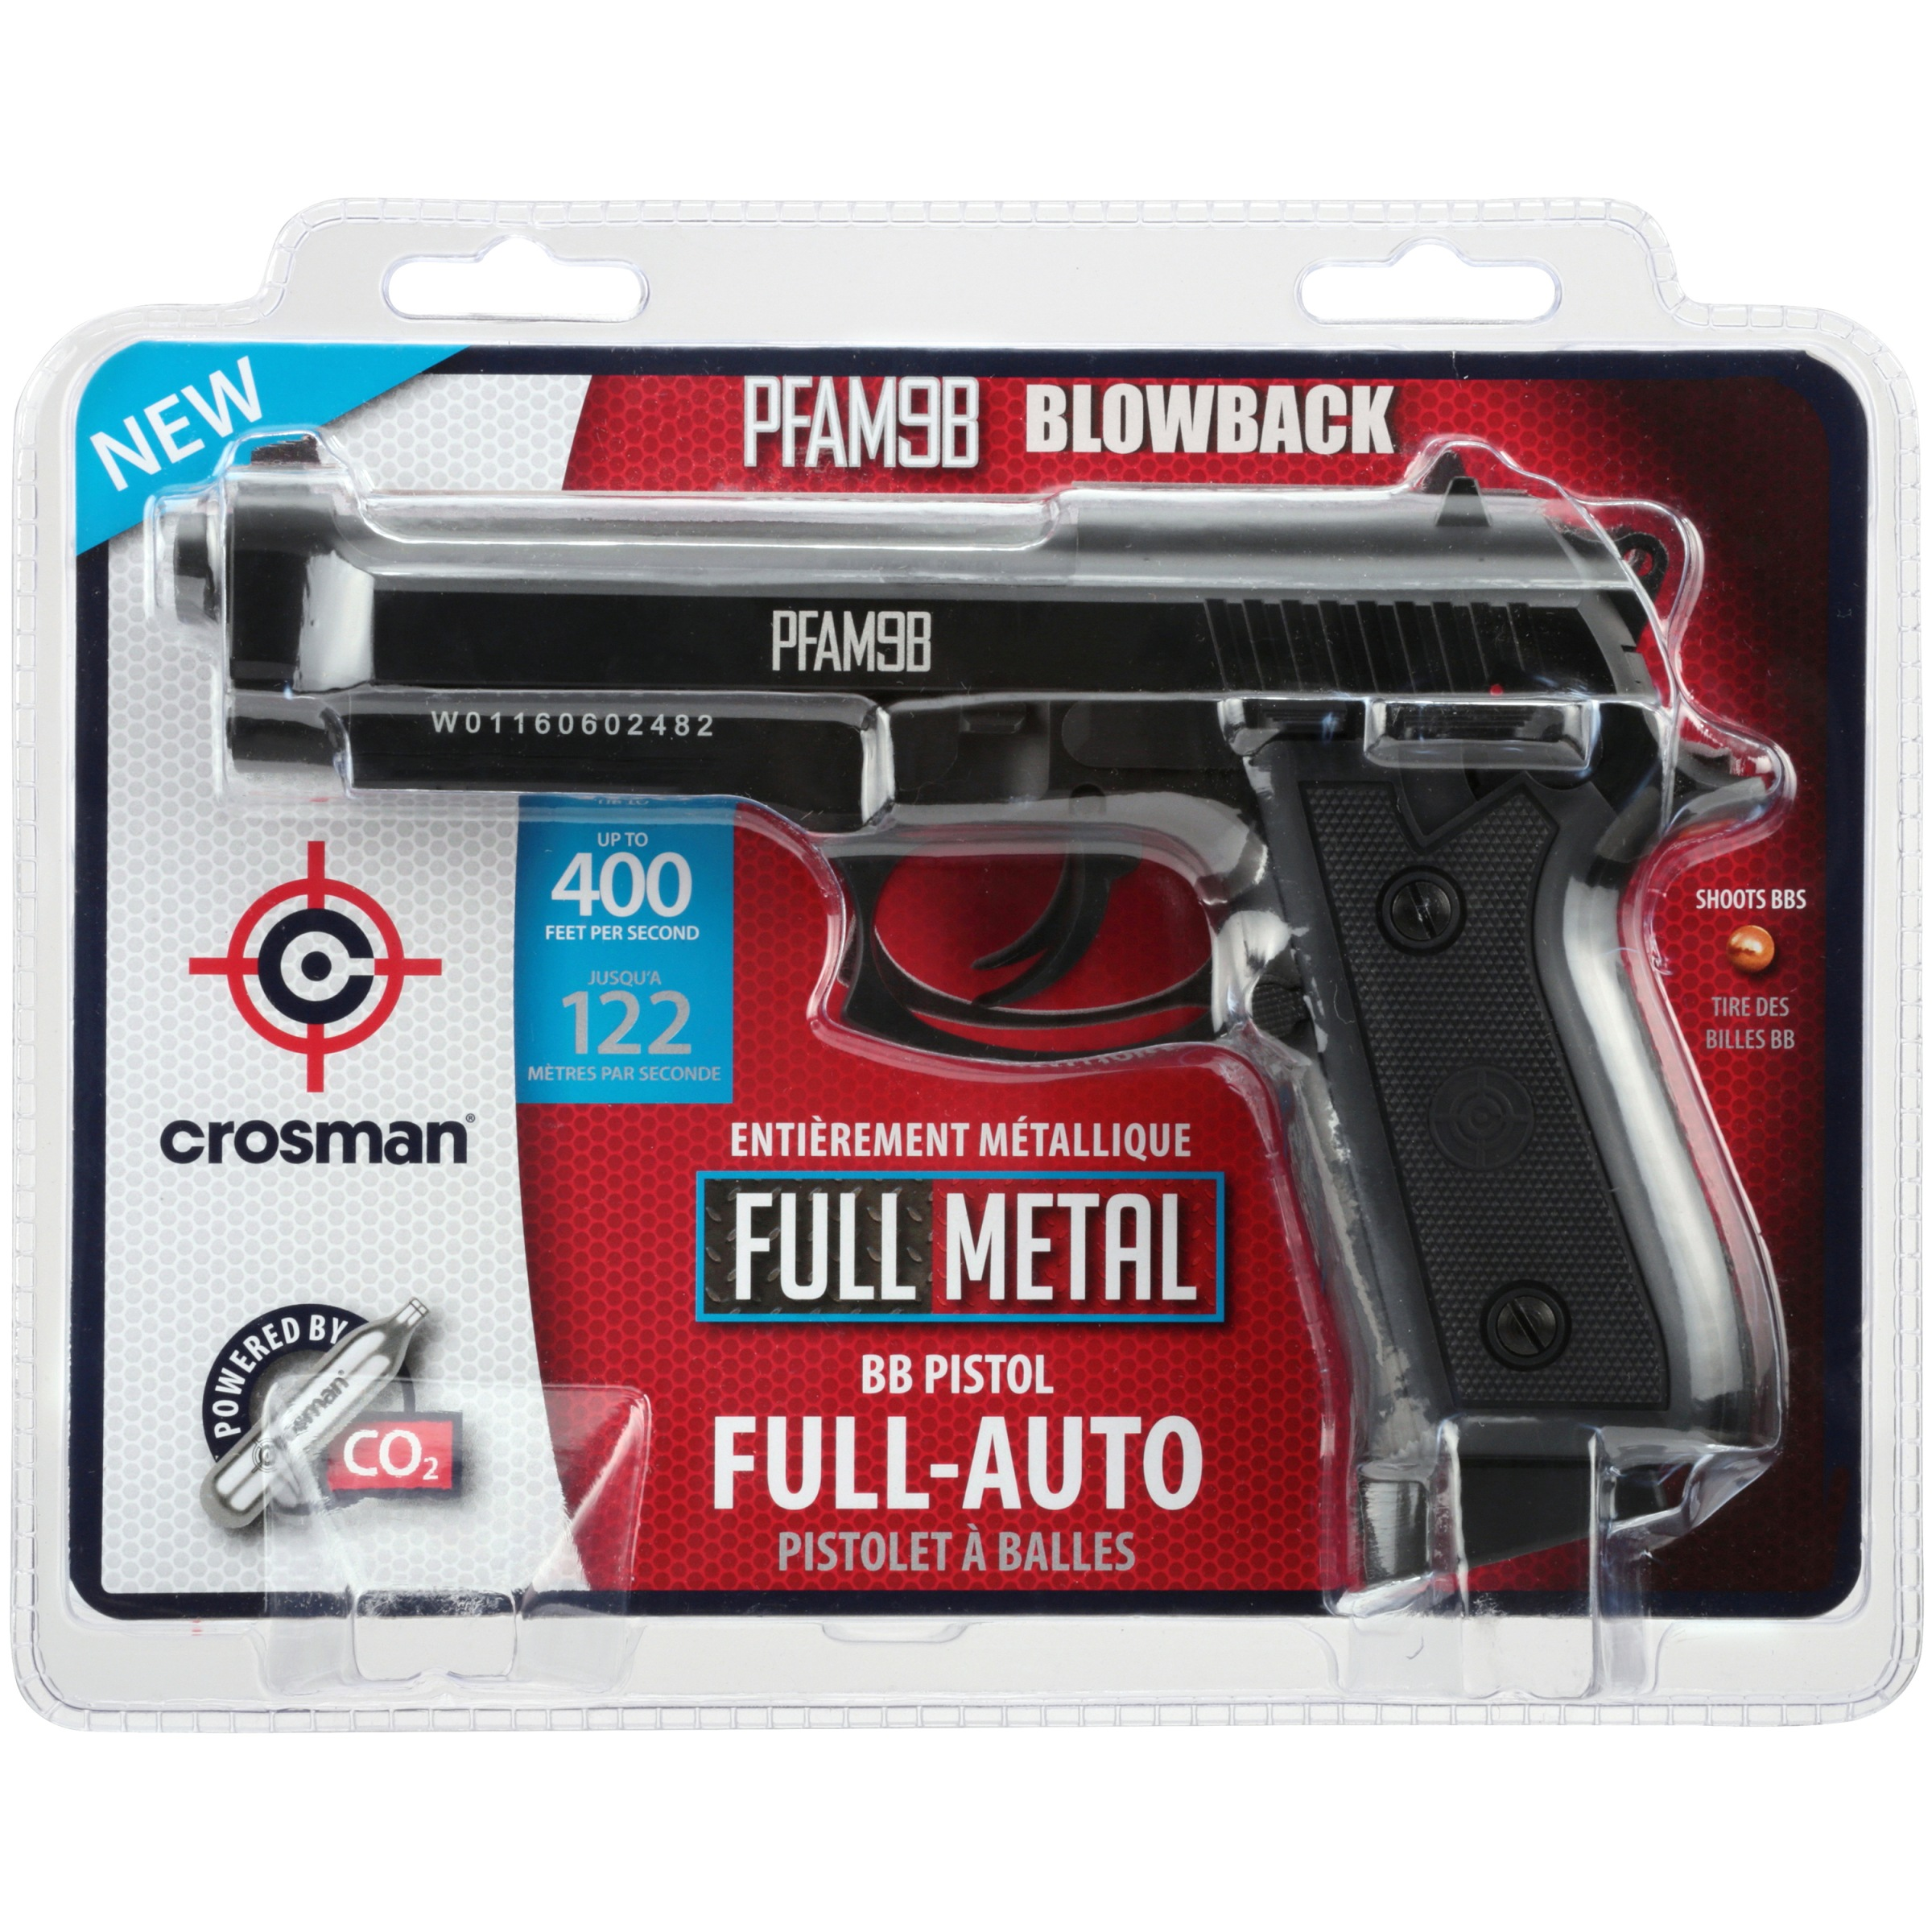 Crosman 177 Caliber Full Auto CO2 Blowback Air Pistol PFAM9B by Crosman Corporation